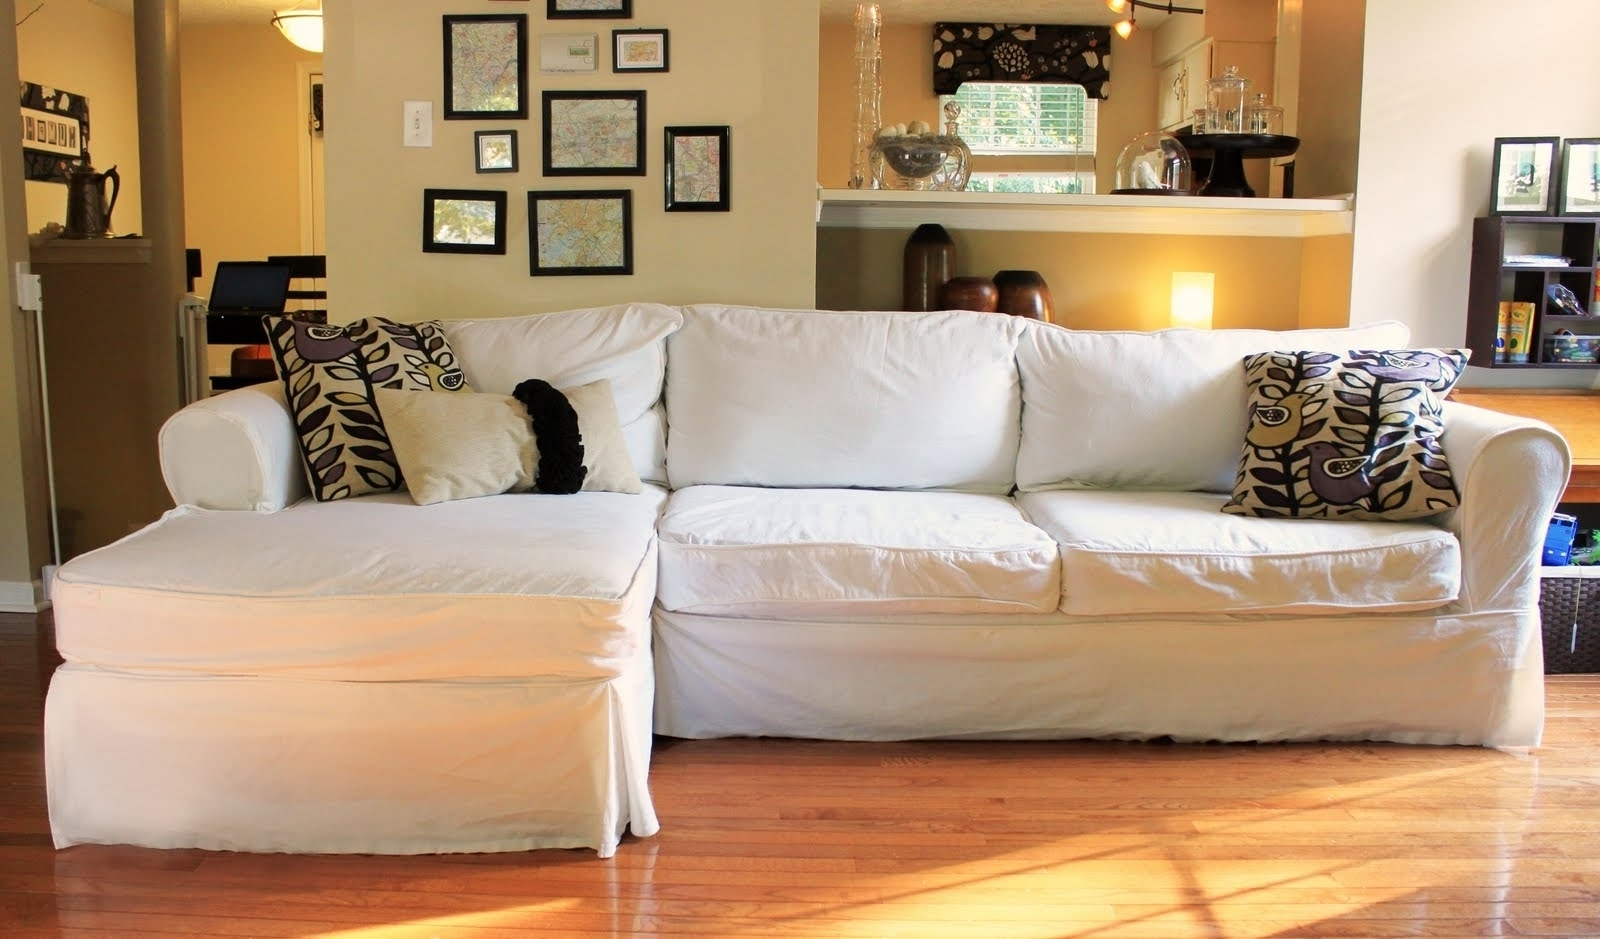 Best And Newest Slipcover Sectional Sofas With Chaise Within Uncategorized : Slipcover Sectional Sofa Within Imposing Beautiful (View 2 of 15)